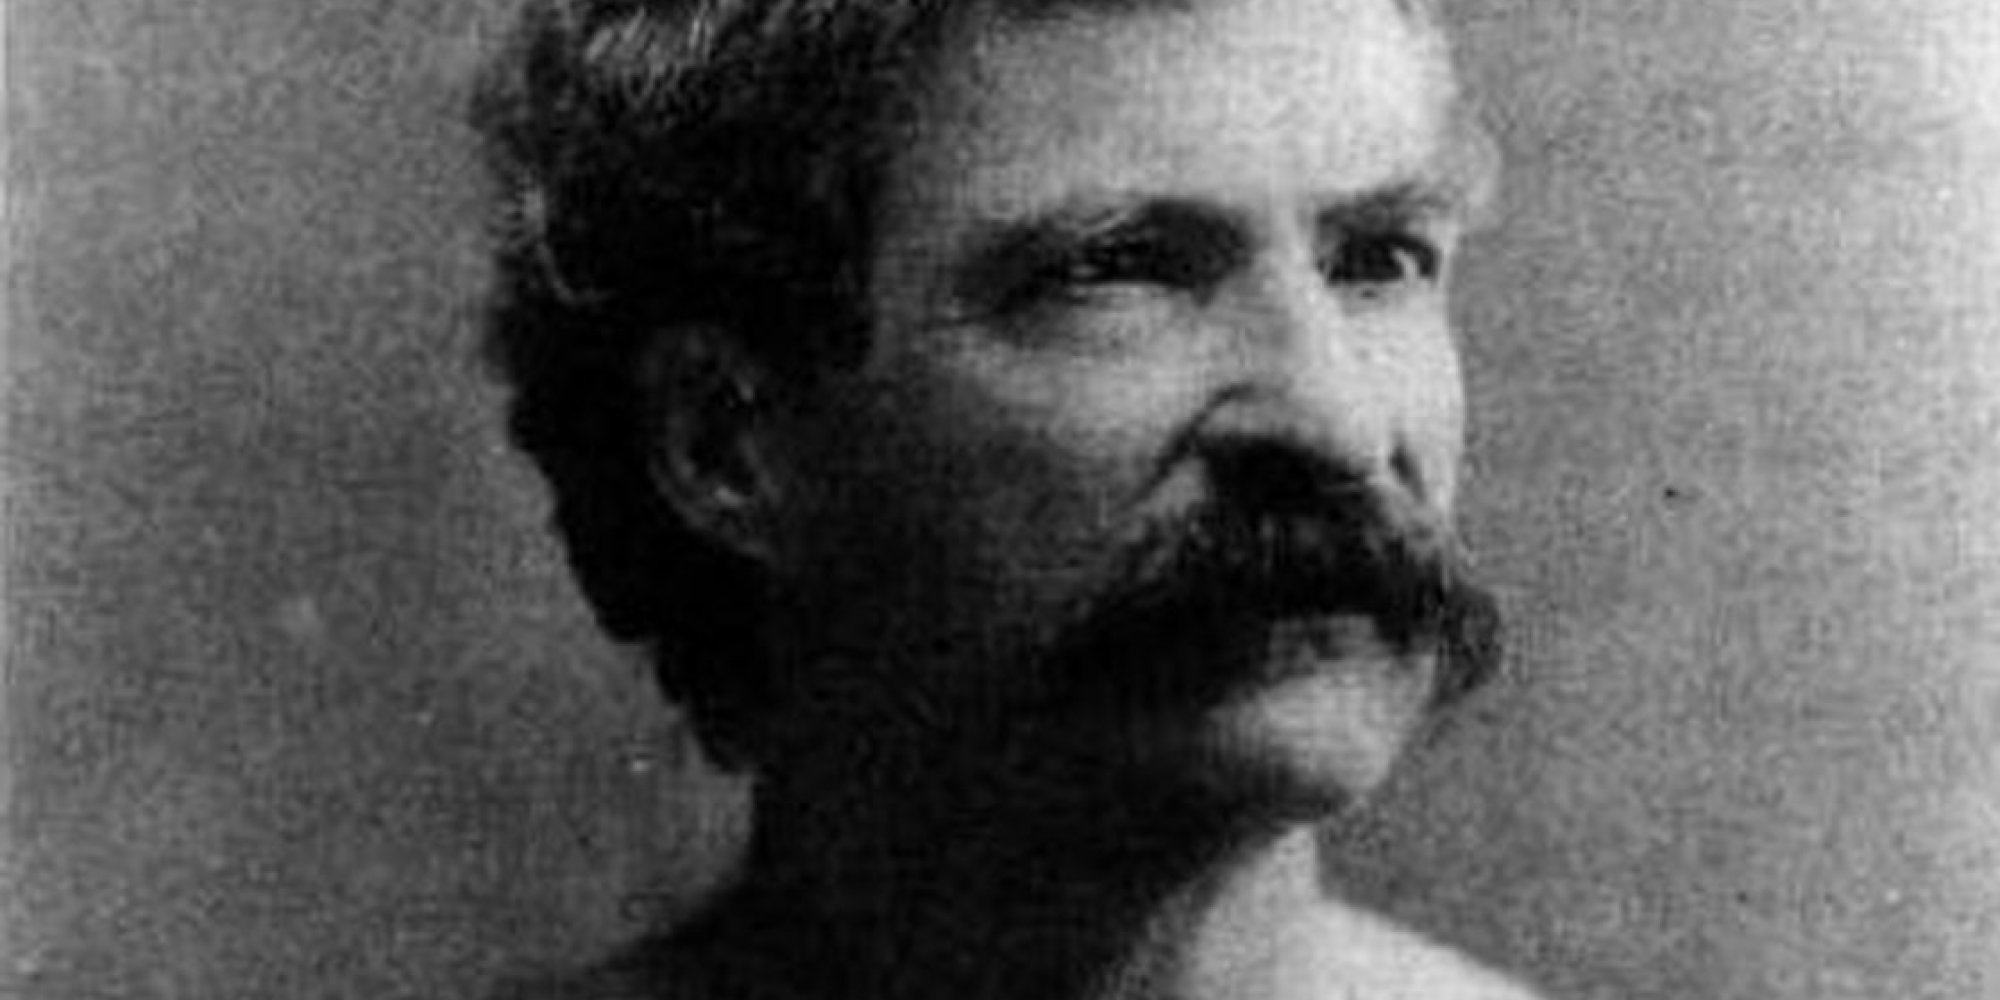 a biography of mark twain a famous american writer Twain took his pen name from an alert cry used on his steamboat - by the mark, twain - imdb mini biography by: in the famous american an author values a.